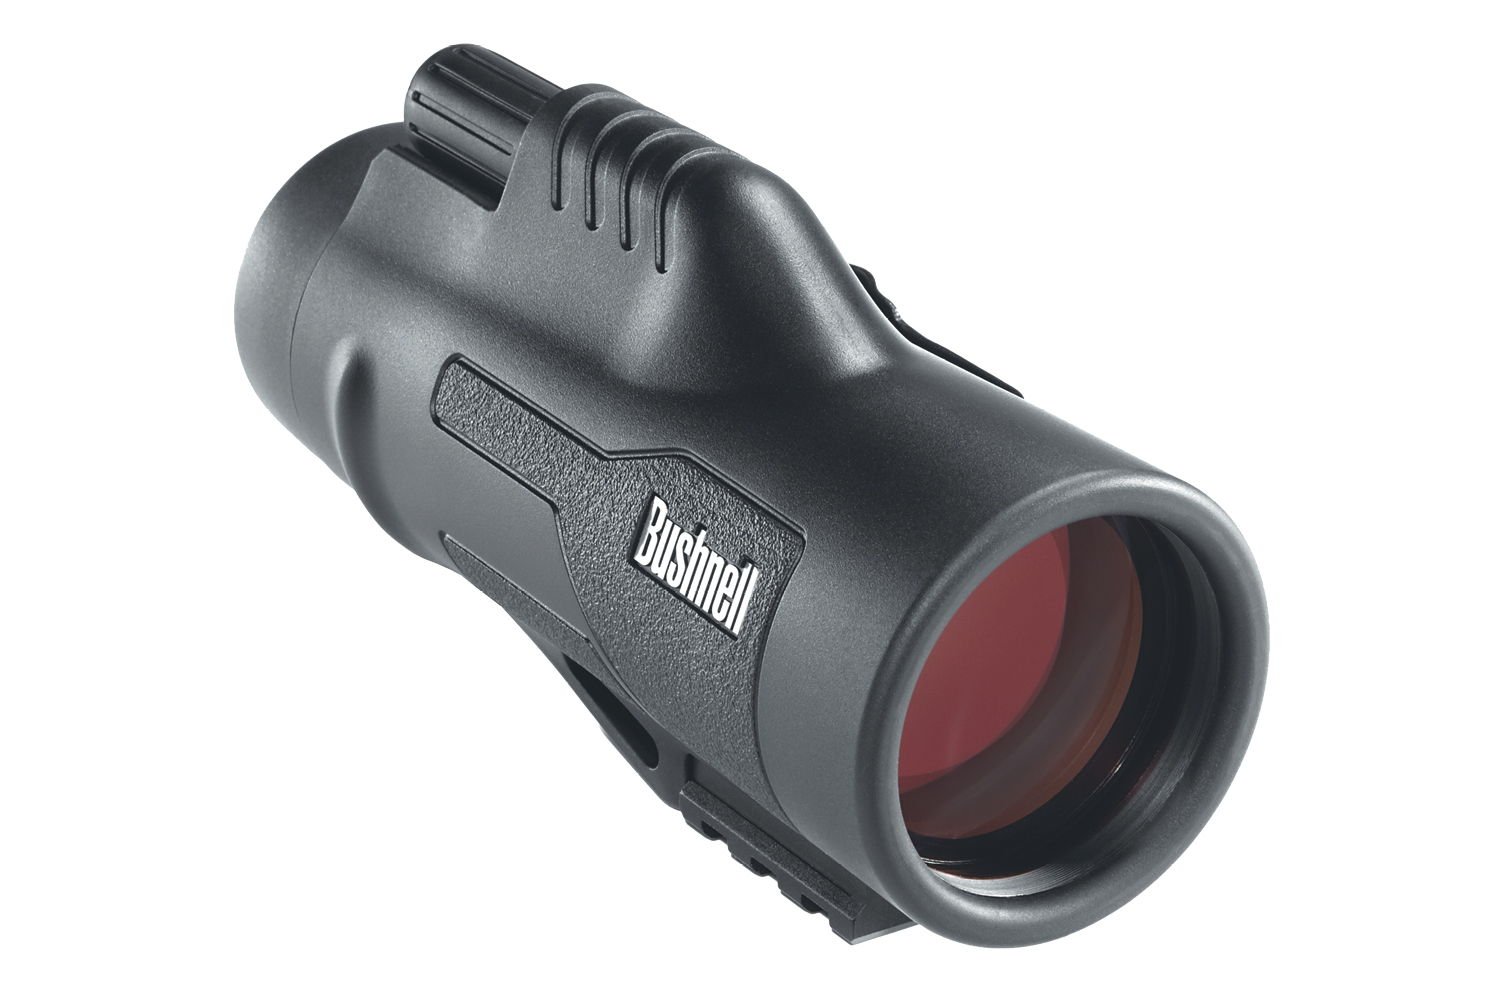 Монокуляр Bushnell Legend Ultra HD 10x 42 Monocular монокуляр окклюдер